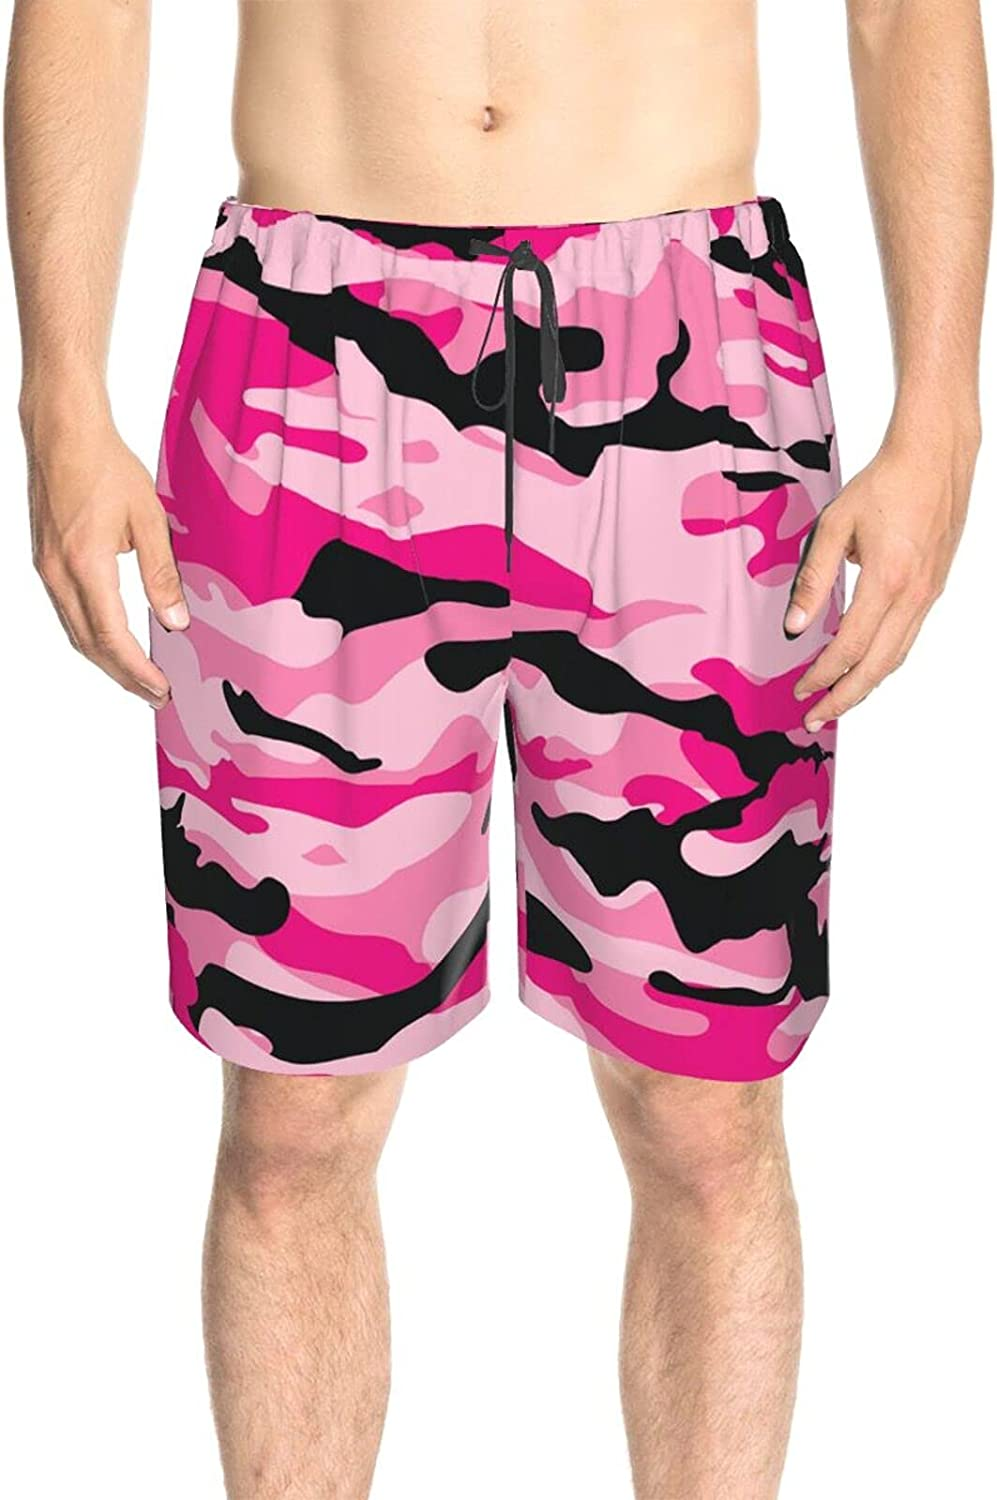 JINJUELS Mens Bathing Suits Pink Black Marble Print Swim Short Boardshort Quick Dry Comfy Athletic Beach Short with Lining